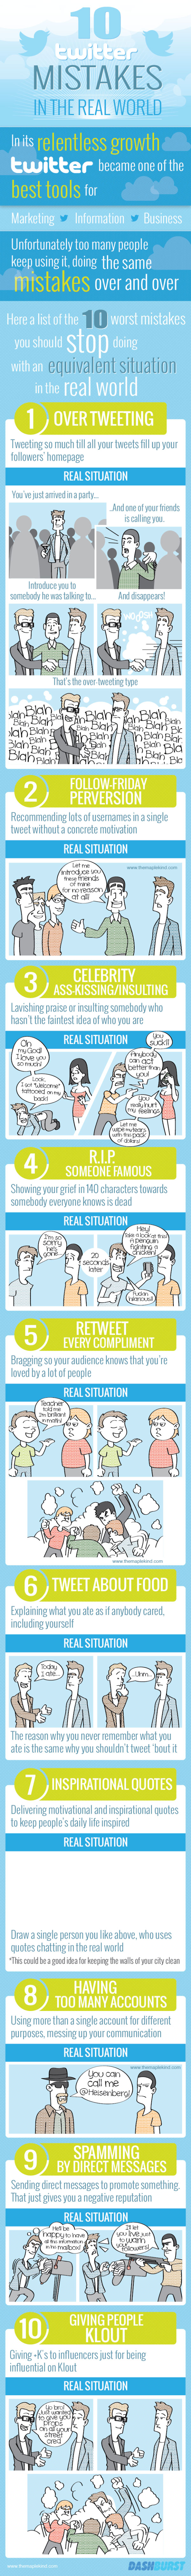 10 Twitter Mistakes To Avoid in Real World [INFOCOMIC]